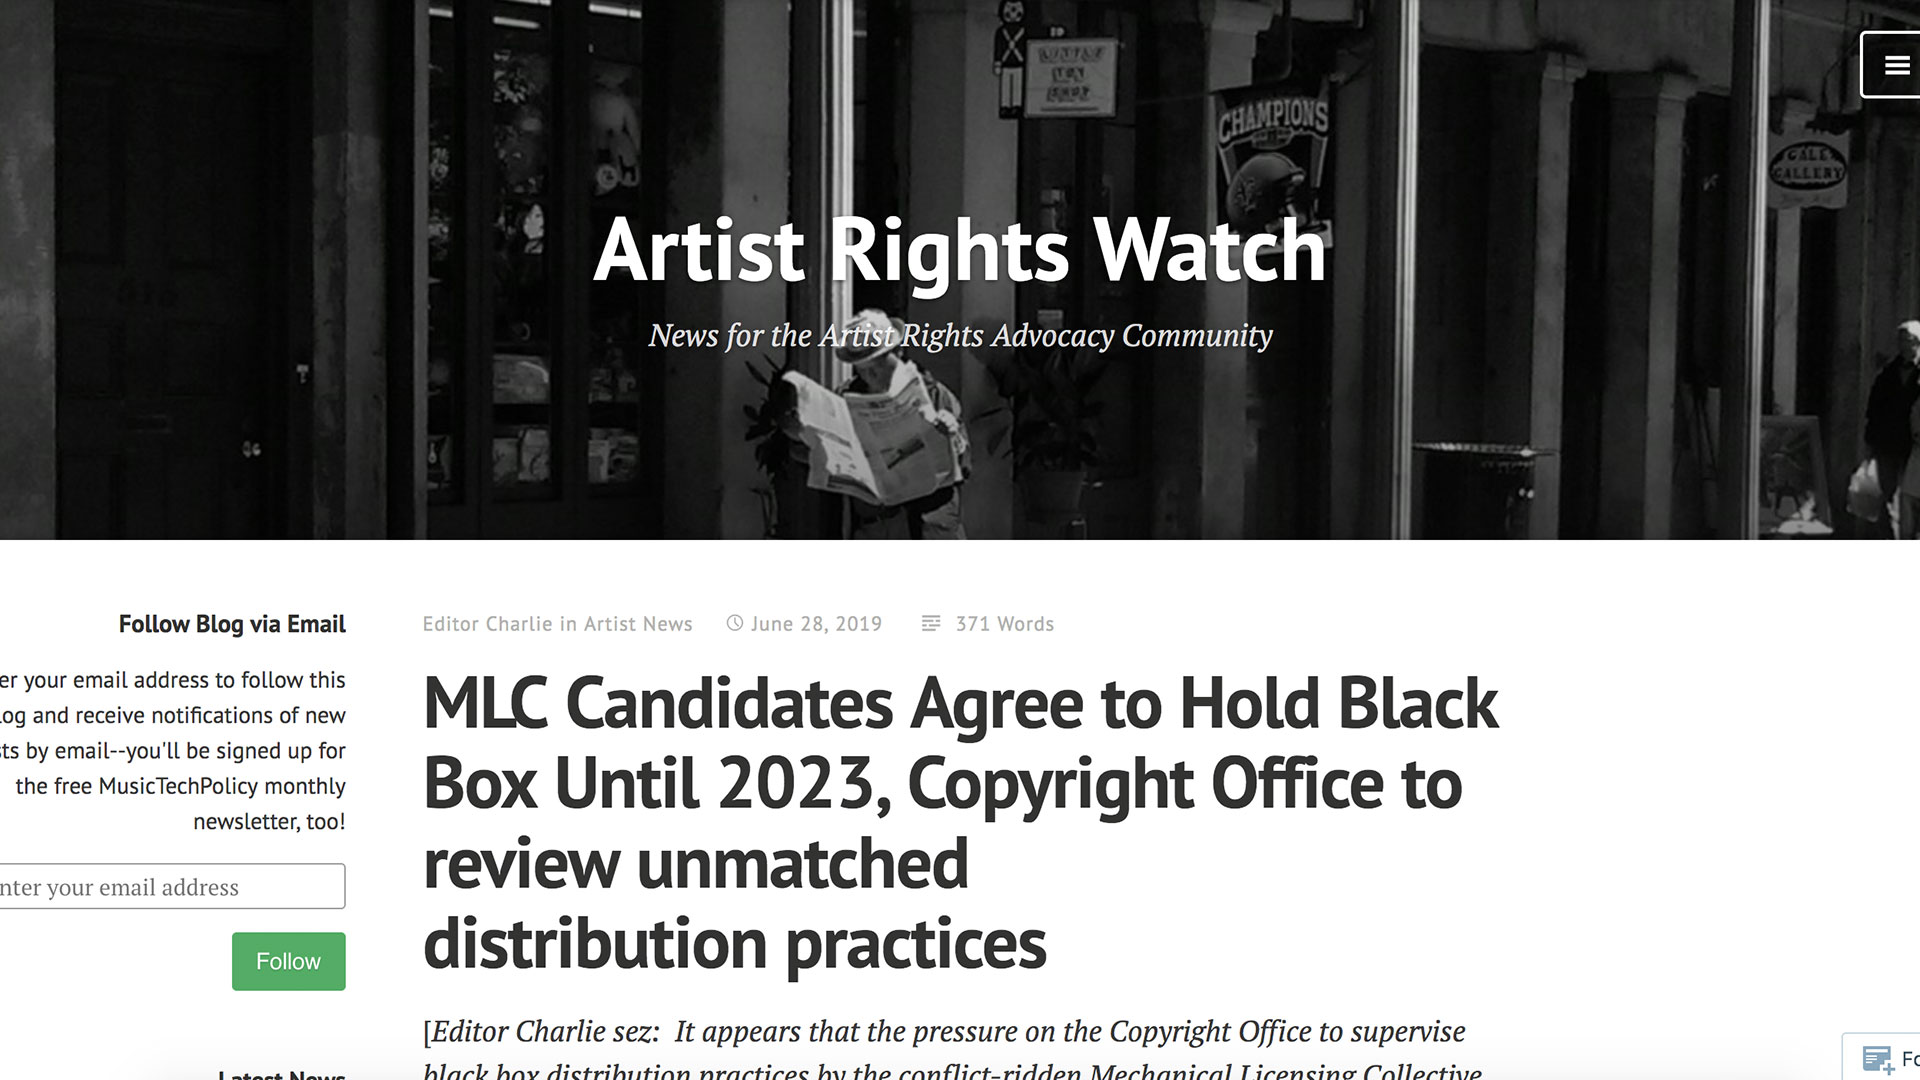 Fairness Rocks News MLC Candidates Agree to Hold Black Box Until 2023, Copyright Office to review unmatched distribution practices